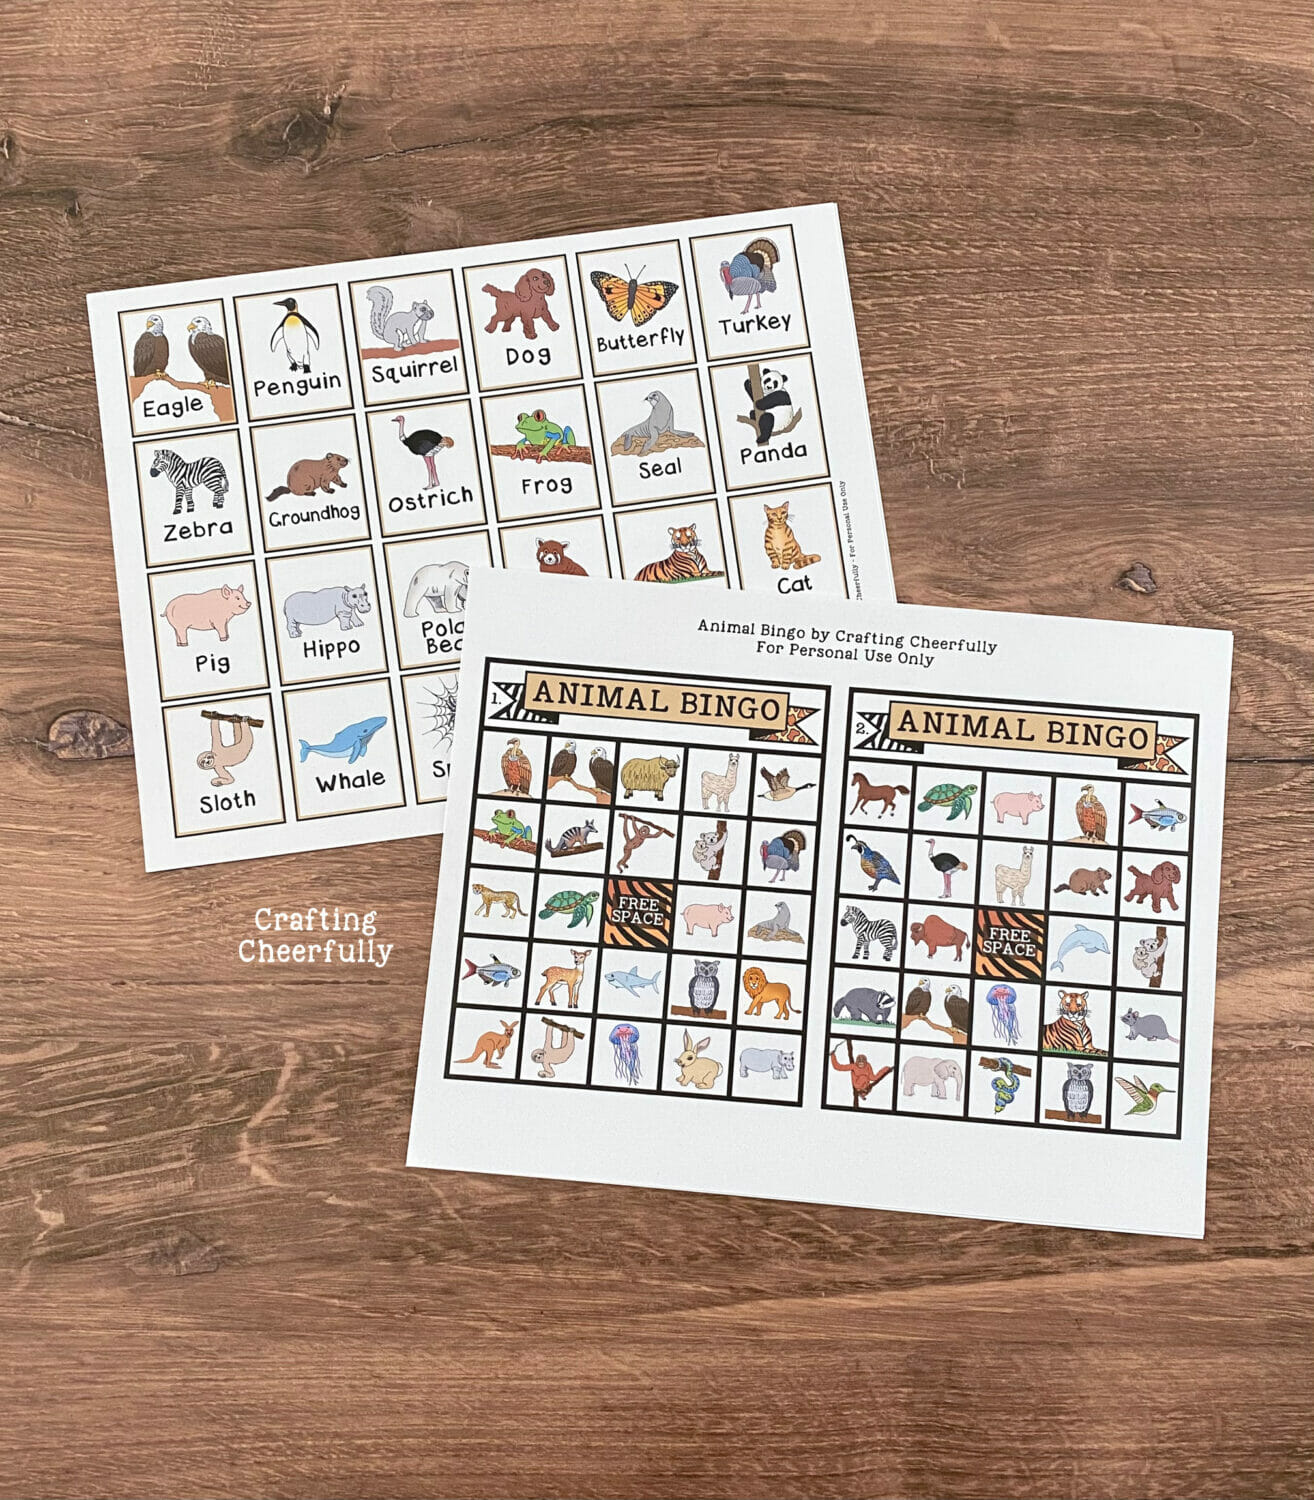 Animal Bingo boards and calling card printables on a table.